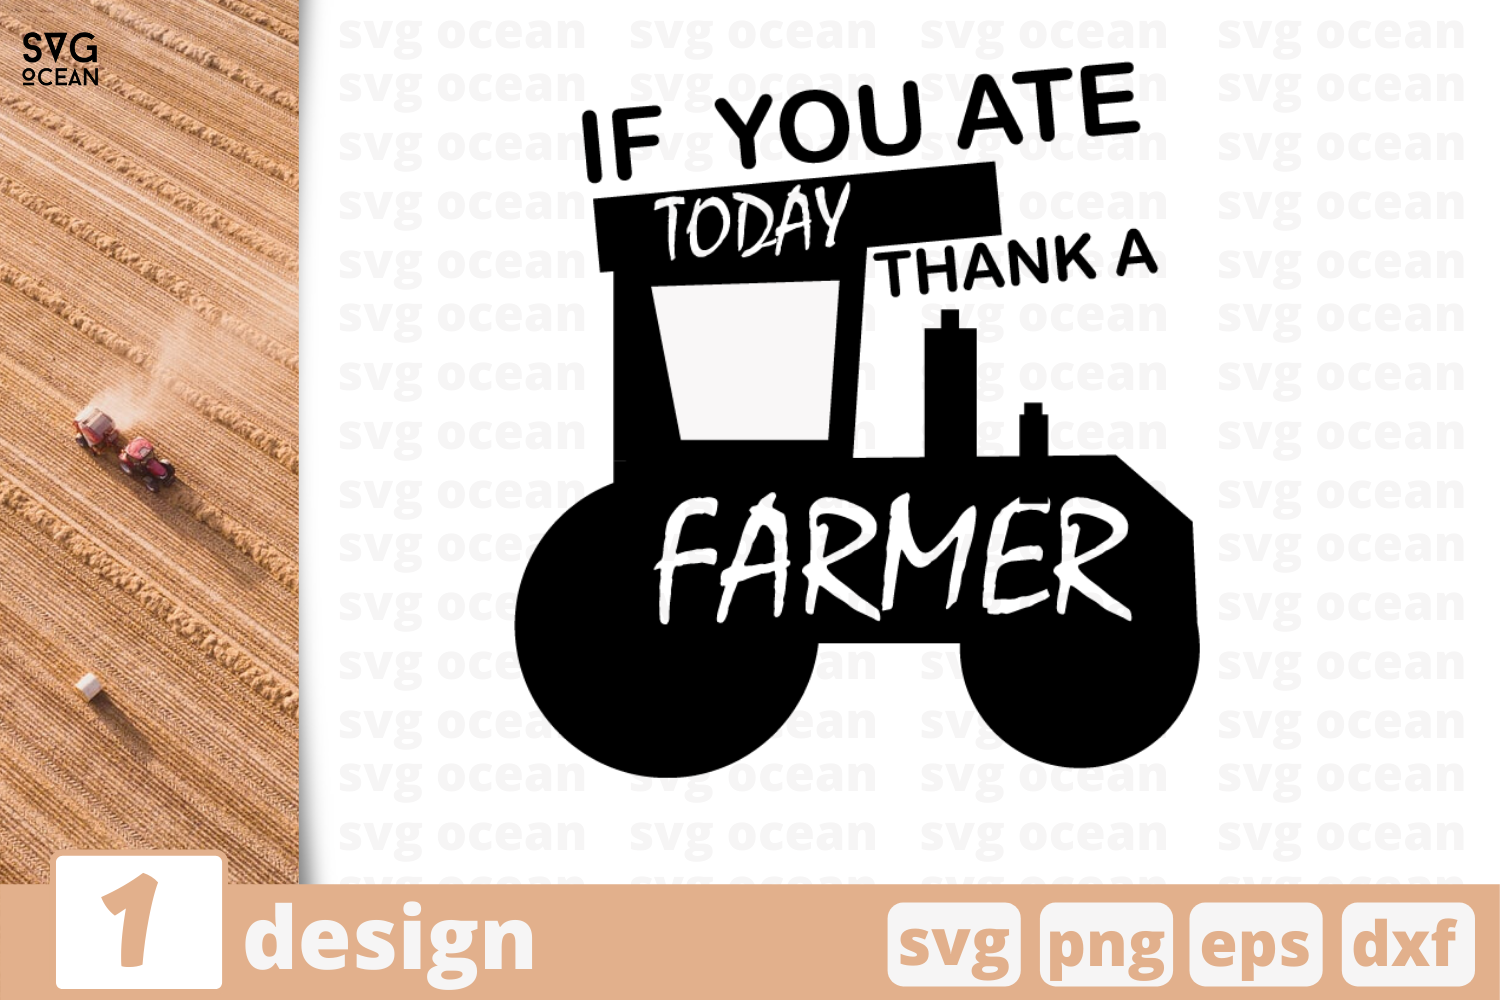 1 Farmer Svg Bundle Quotes Cricut Svg By Svgocean Thehungryjpeg Com